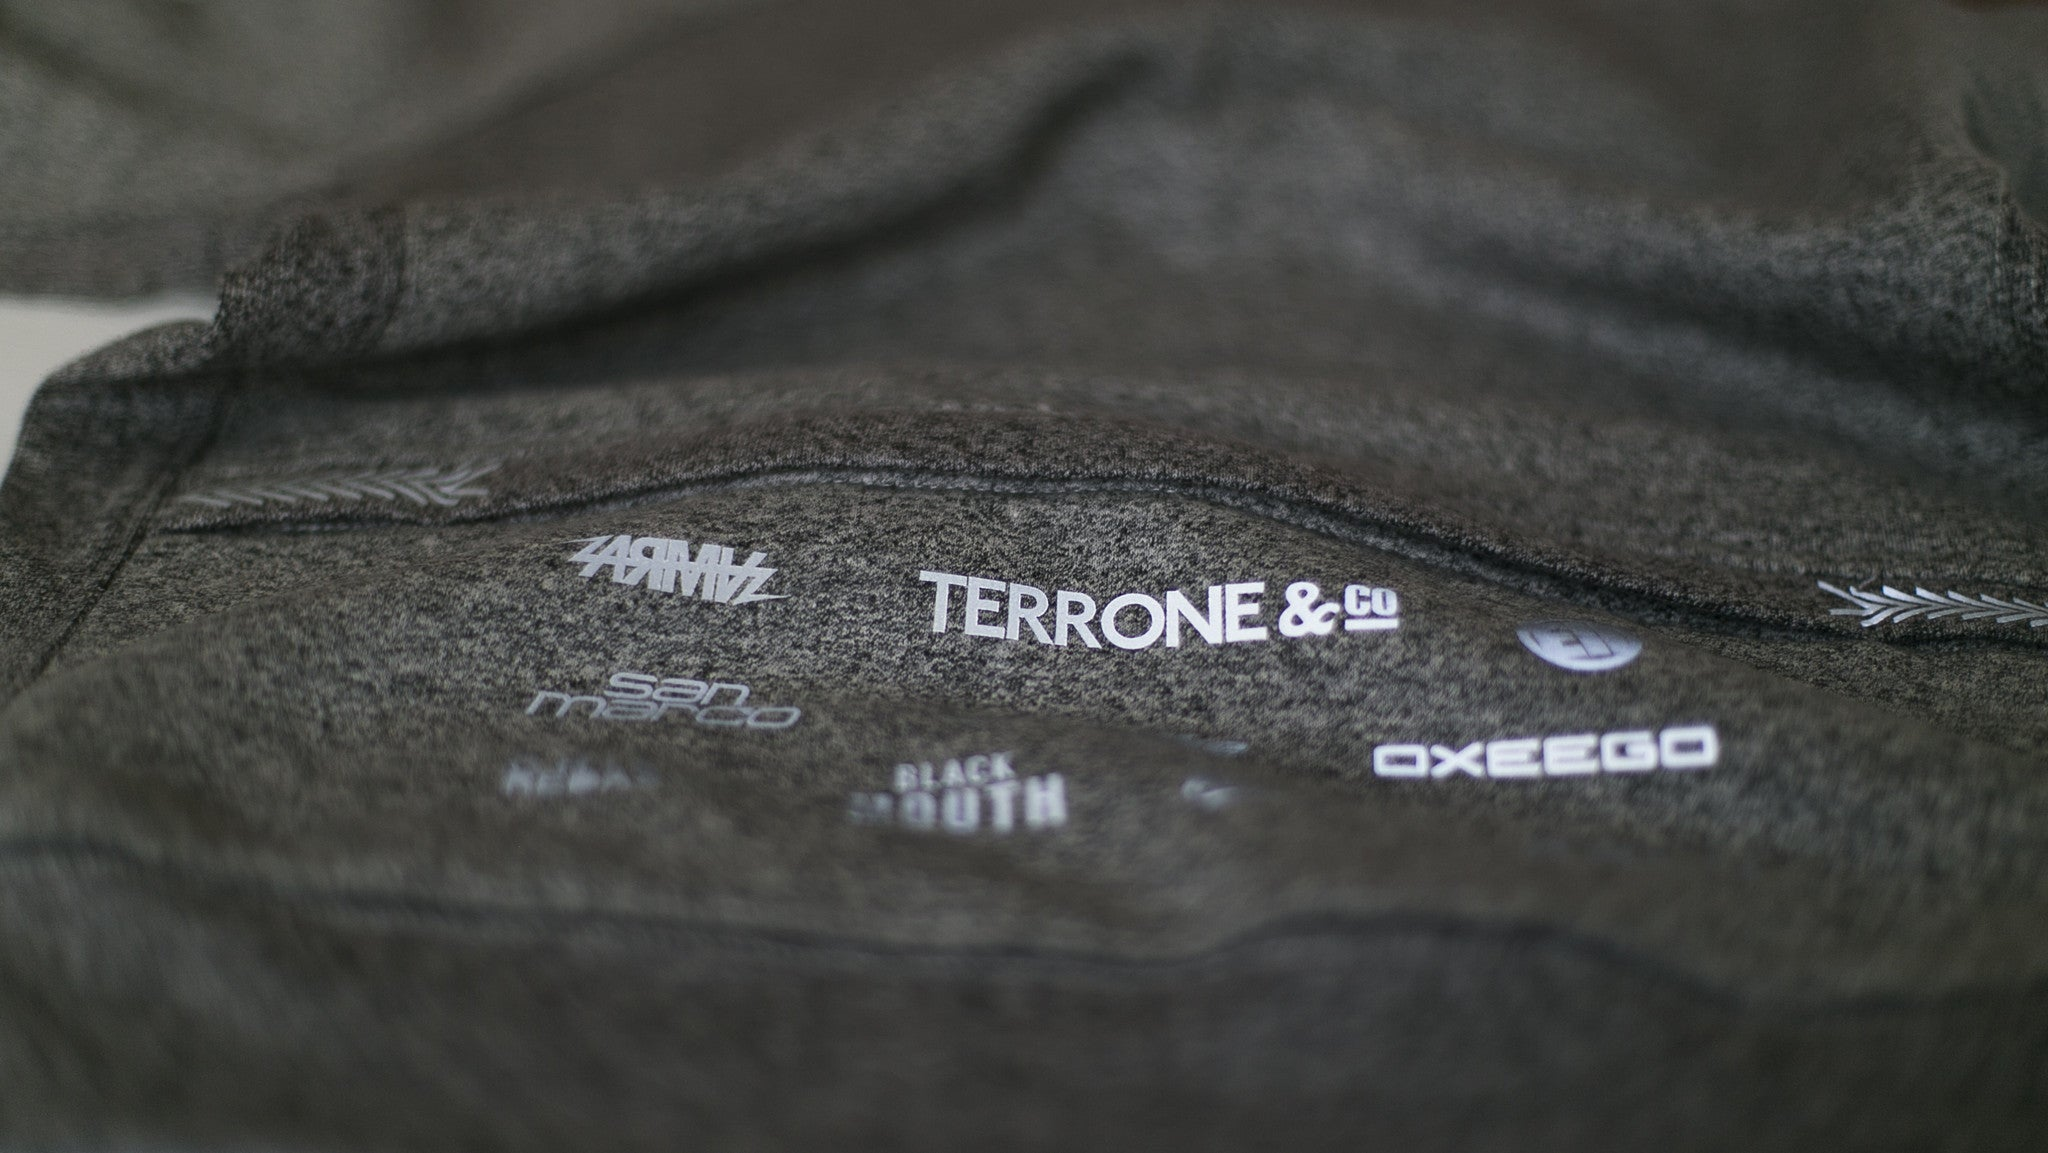 NVAYRK TERRONE Team Edition V2 Sweatshirt